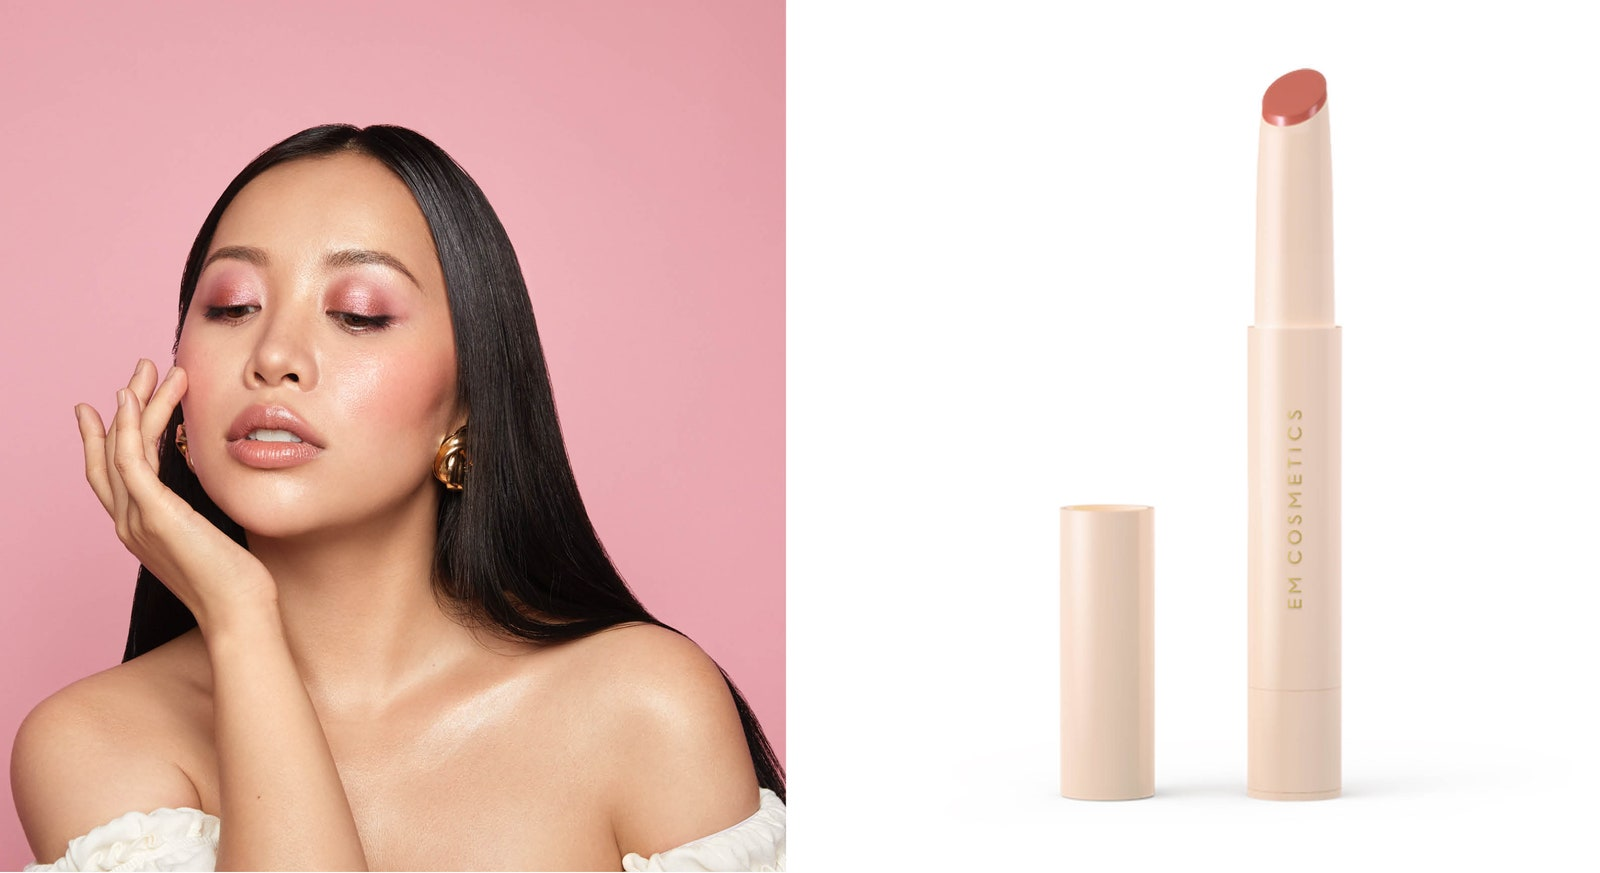 EM Cosmetics from influencer Michelle Phan